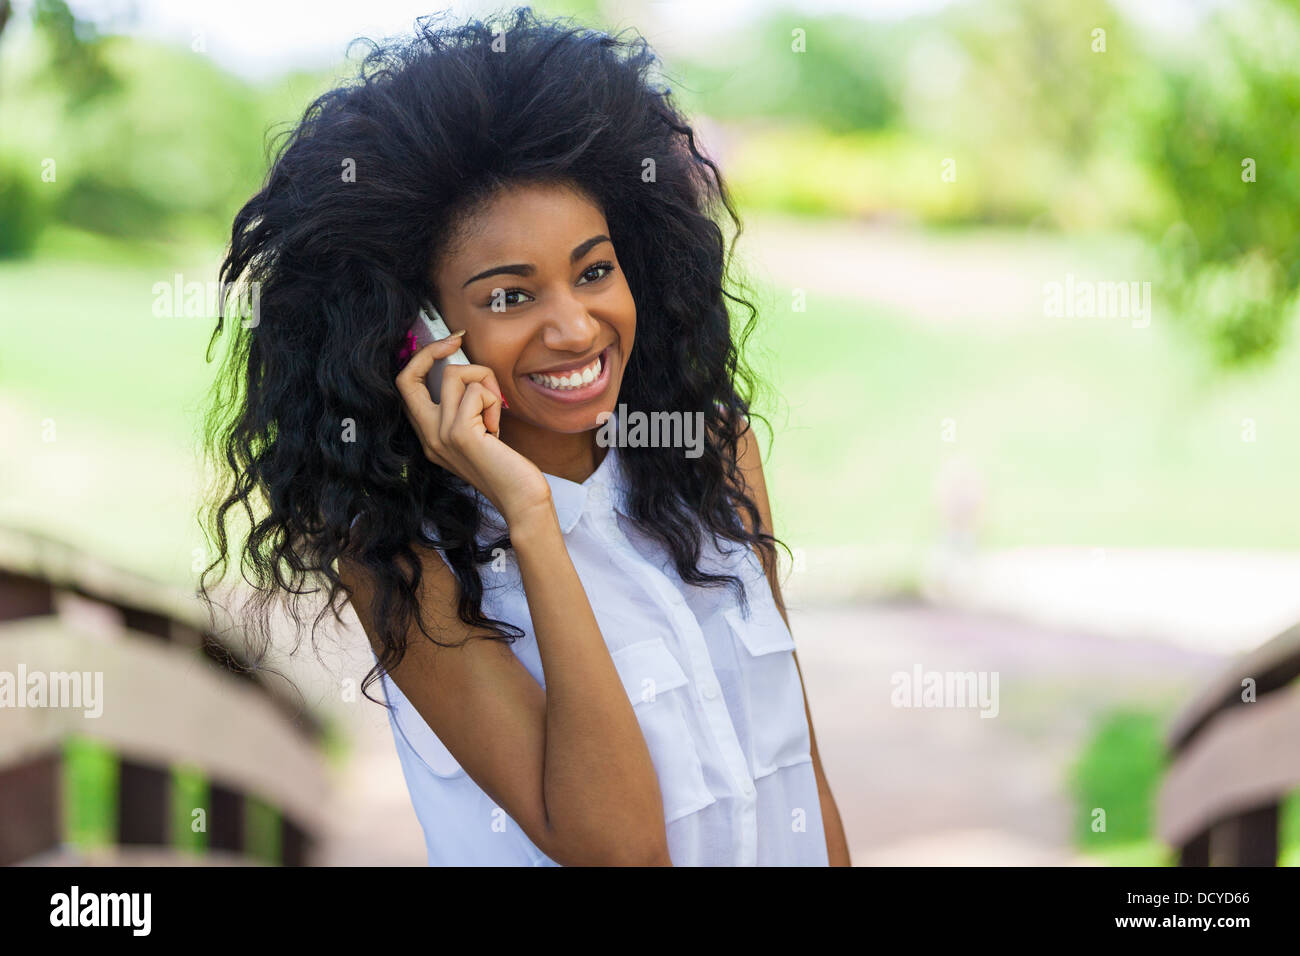 Smiling teenage black girl using a mobile phone - African people - Stock Image